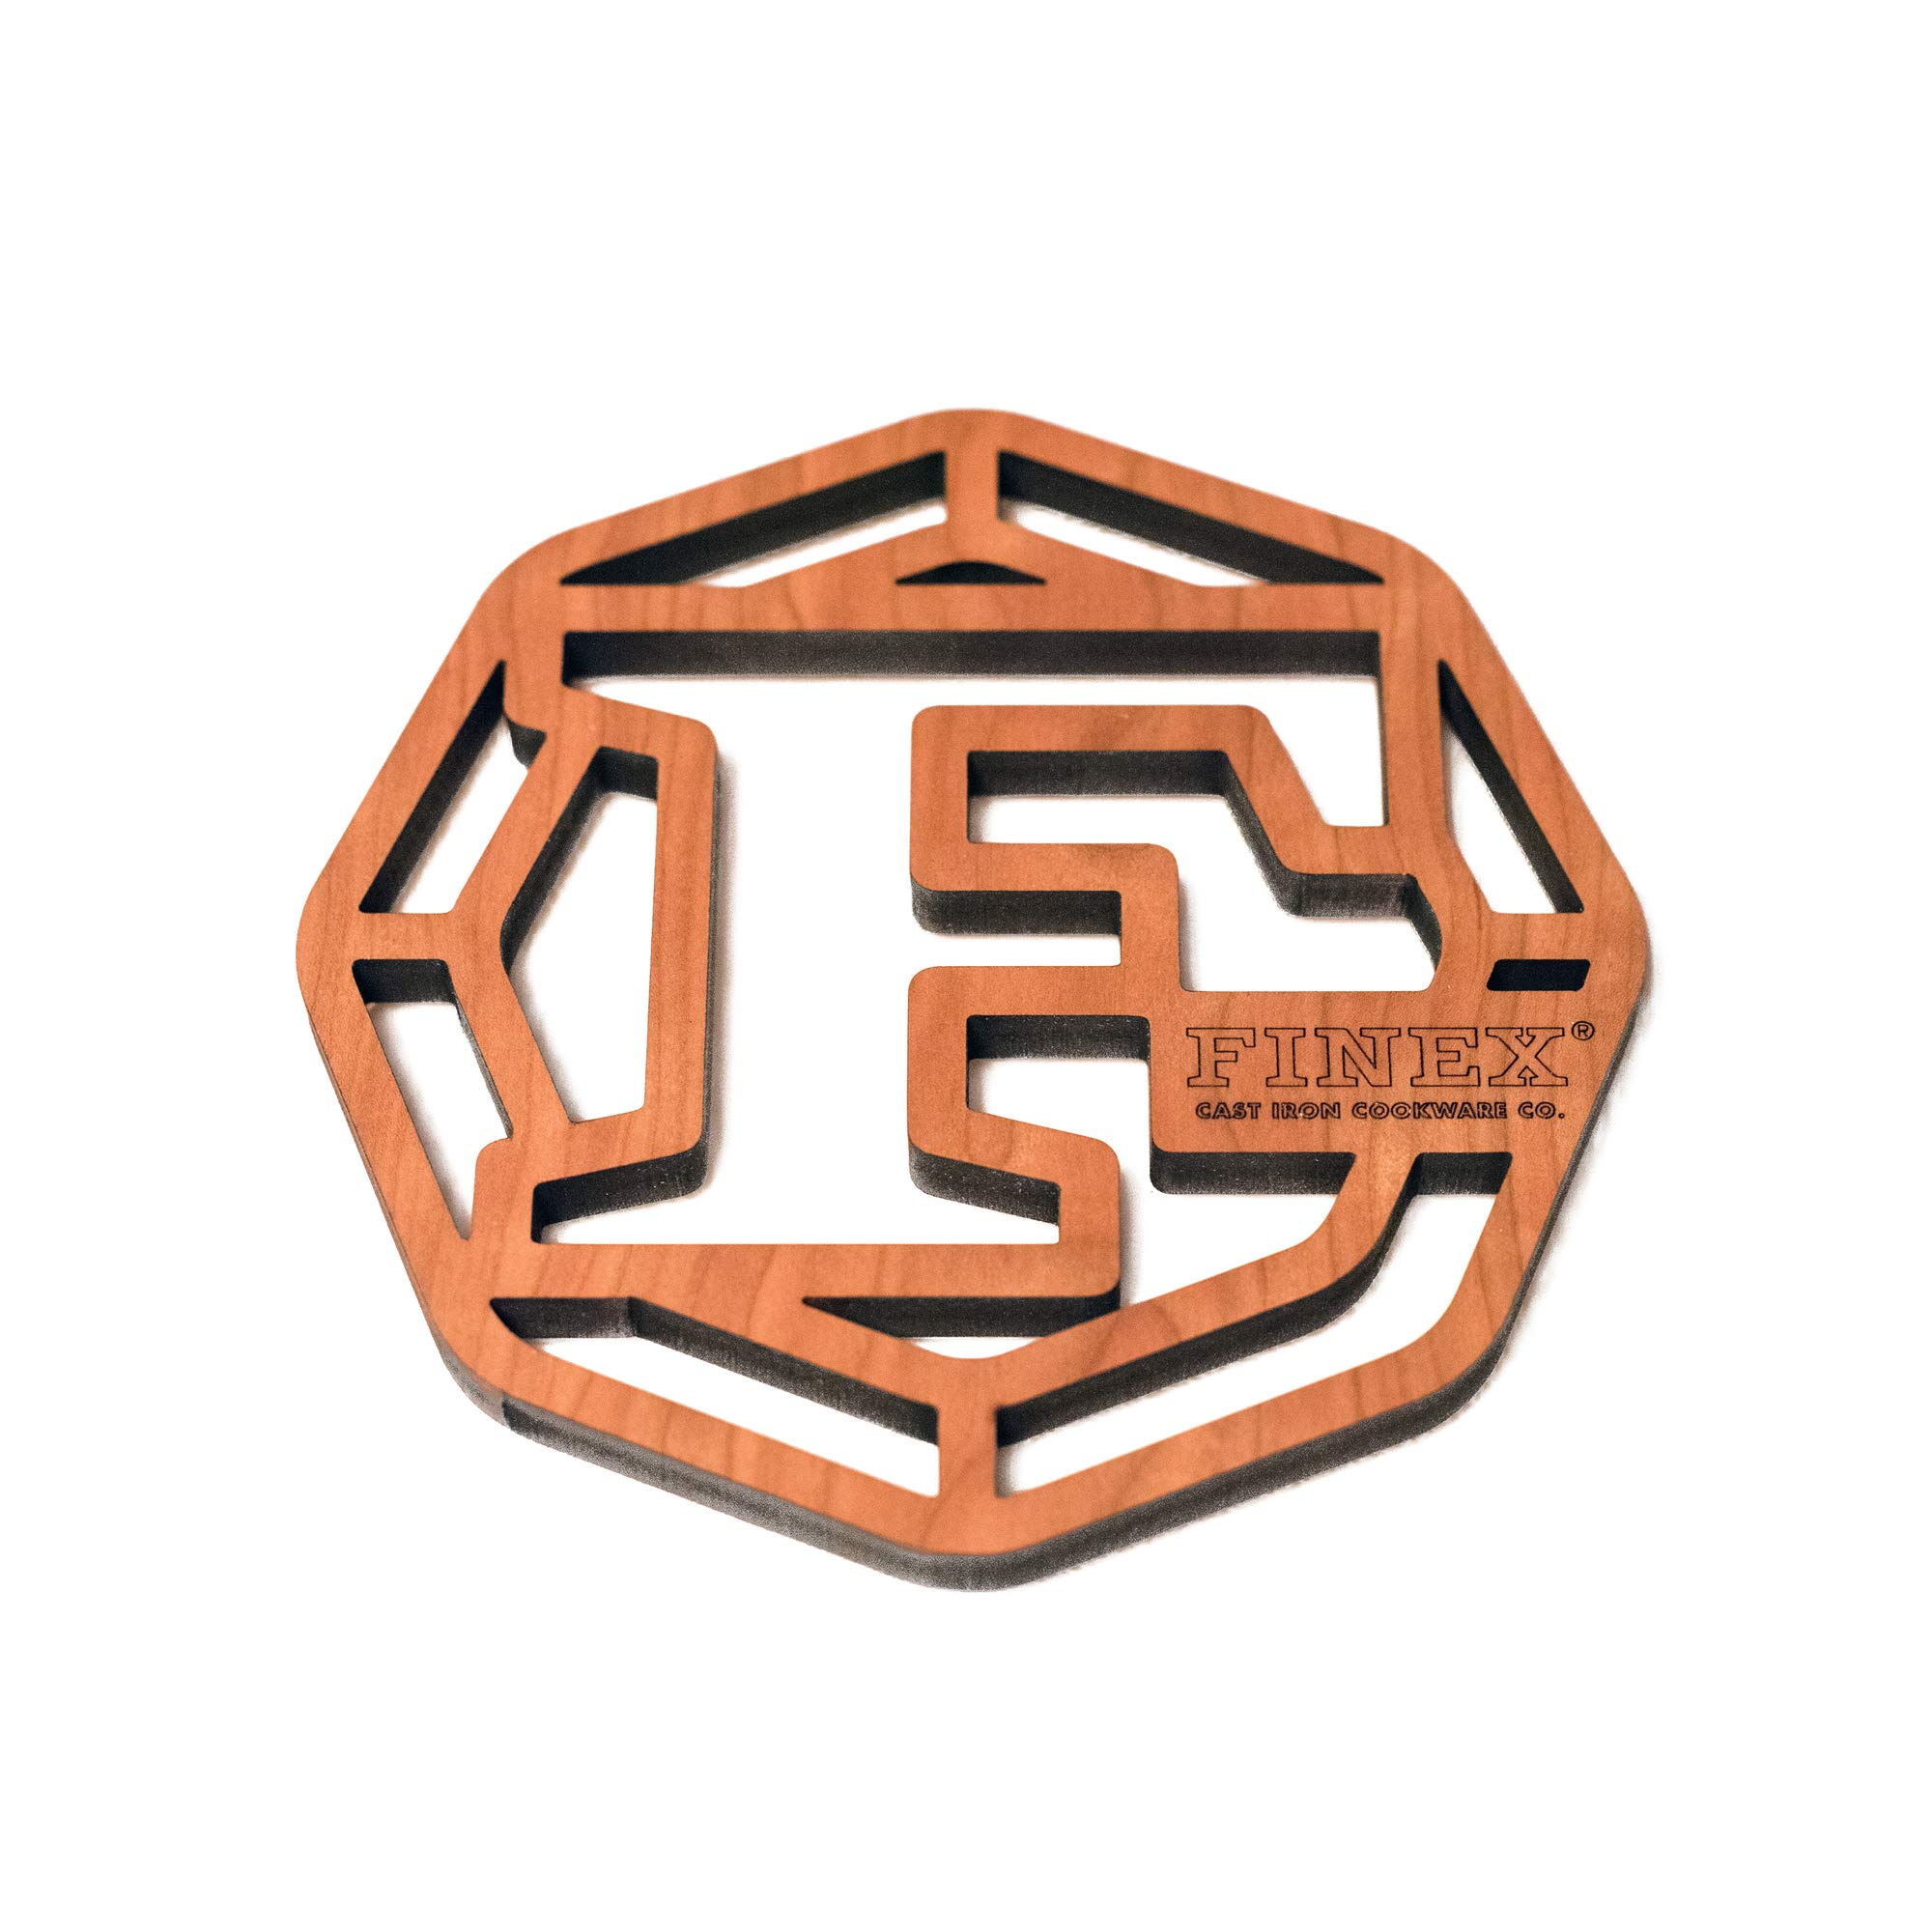 FINEX - Laser Cut Cherry Wood Trivet, Crafted in the USA by FINEX